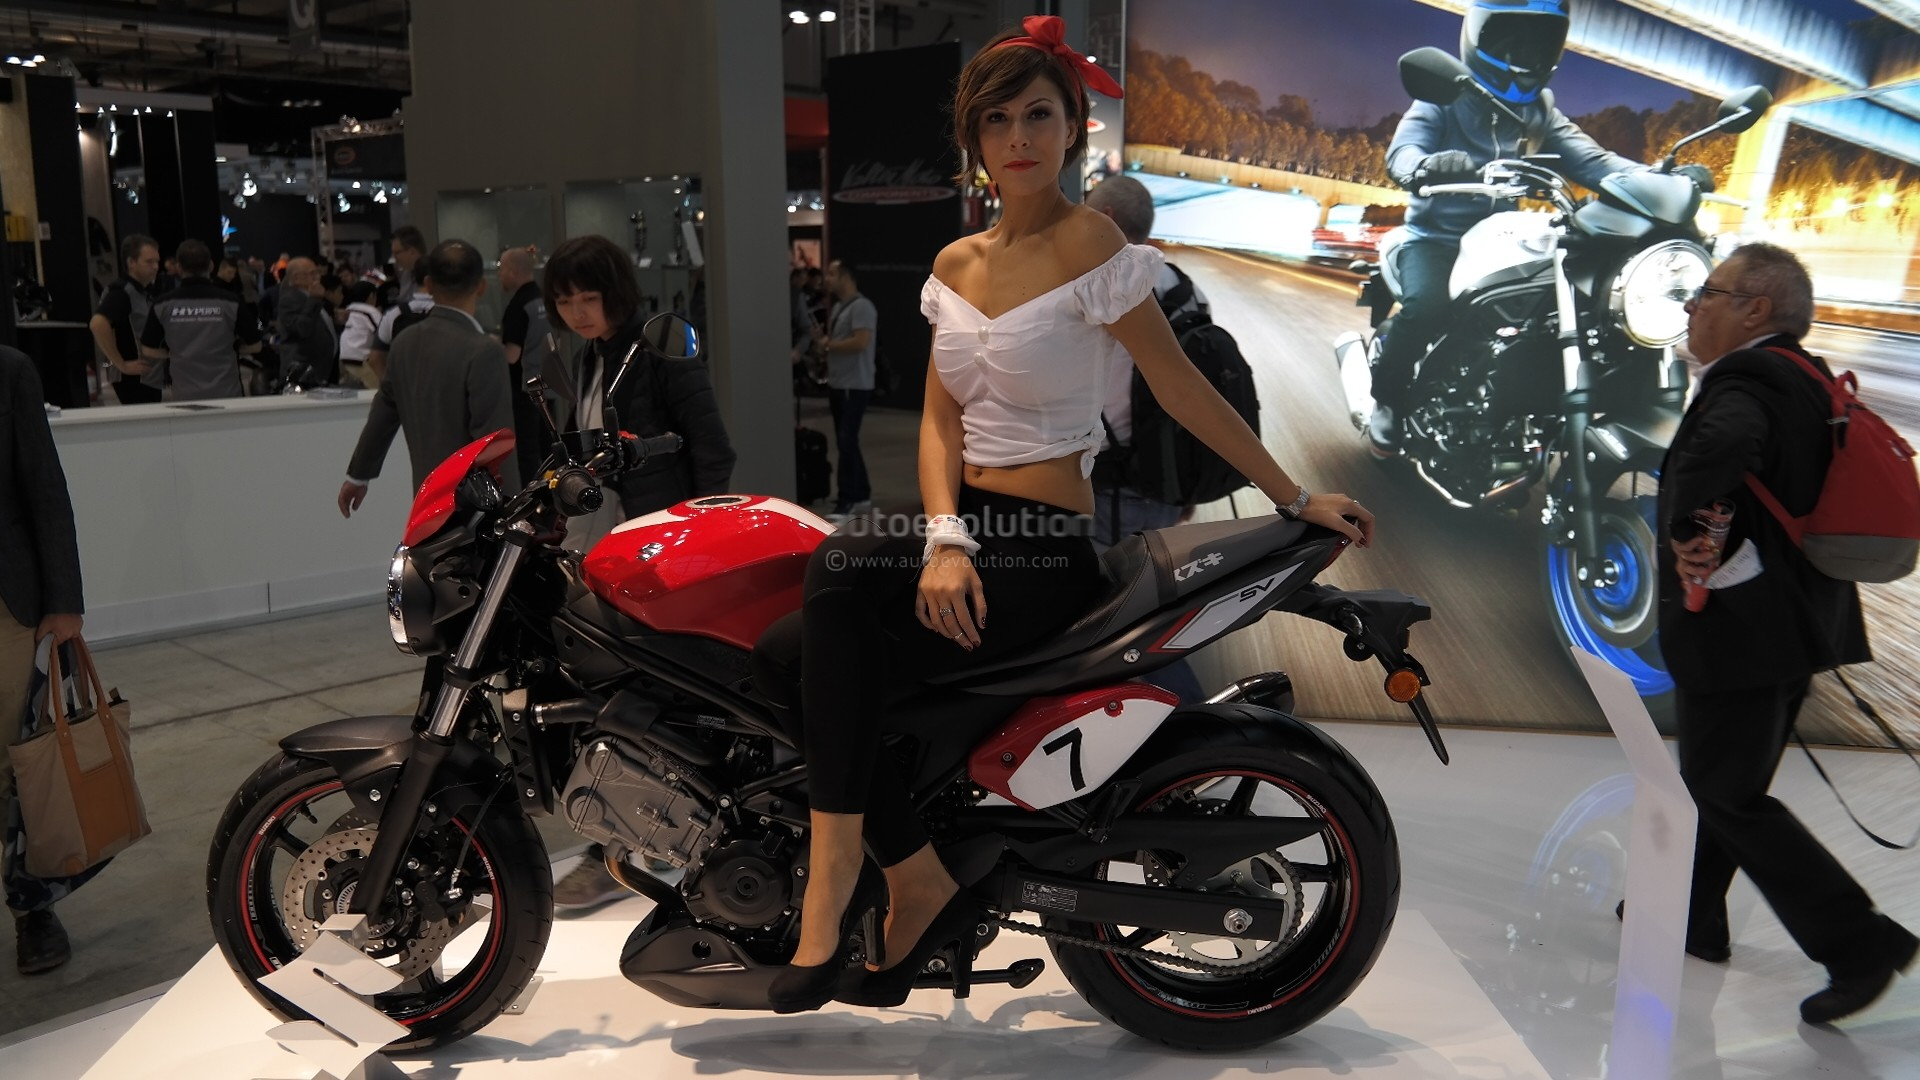 Suzuki Sv650 And The New Yamaha Adventure Bike A2 Compliant